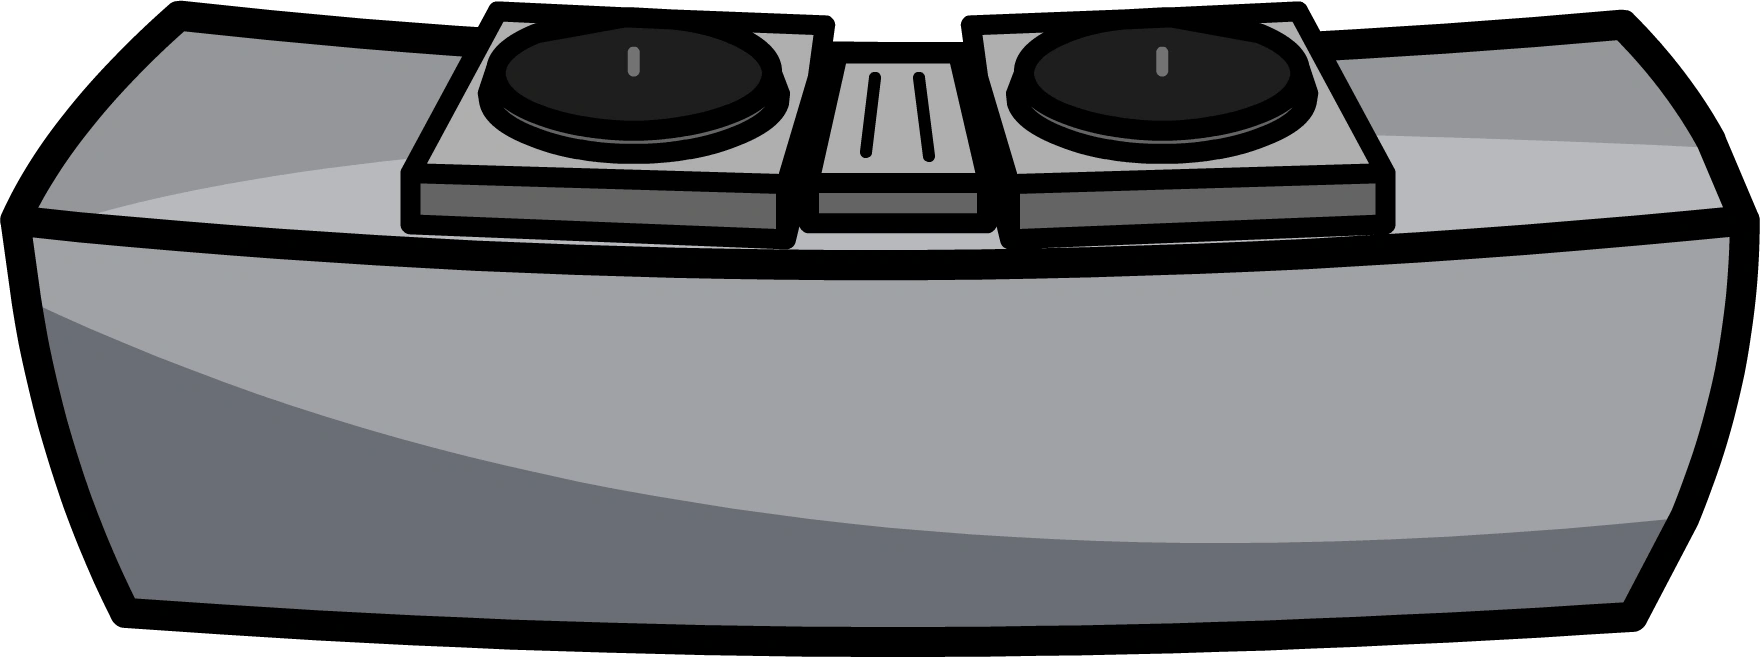 Mesa De Dj Online Dj Table Club Penguin Wiki Fandom Powered By Wikia